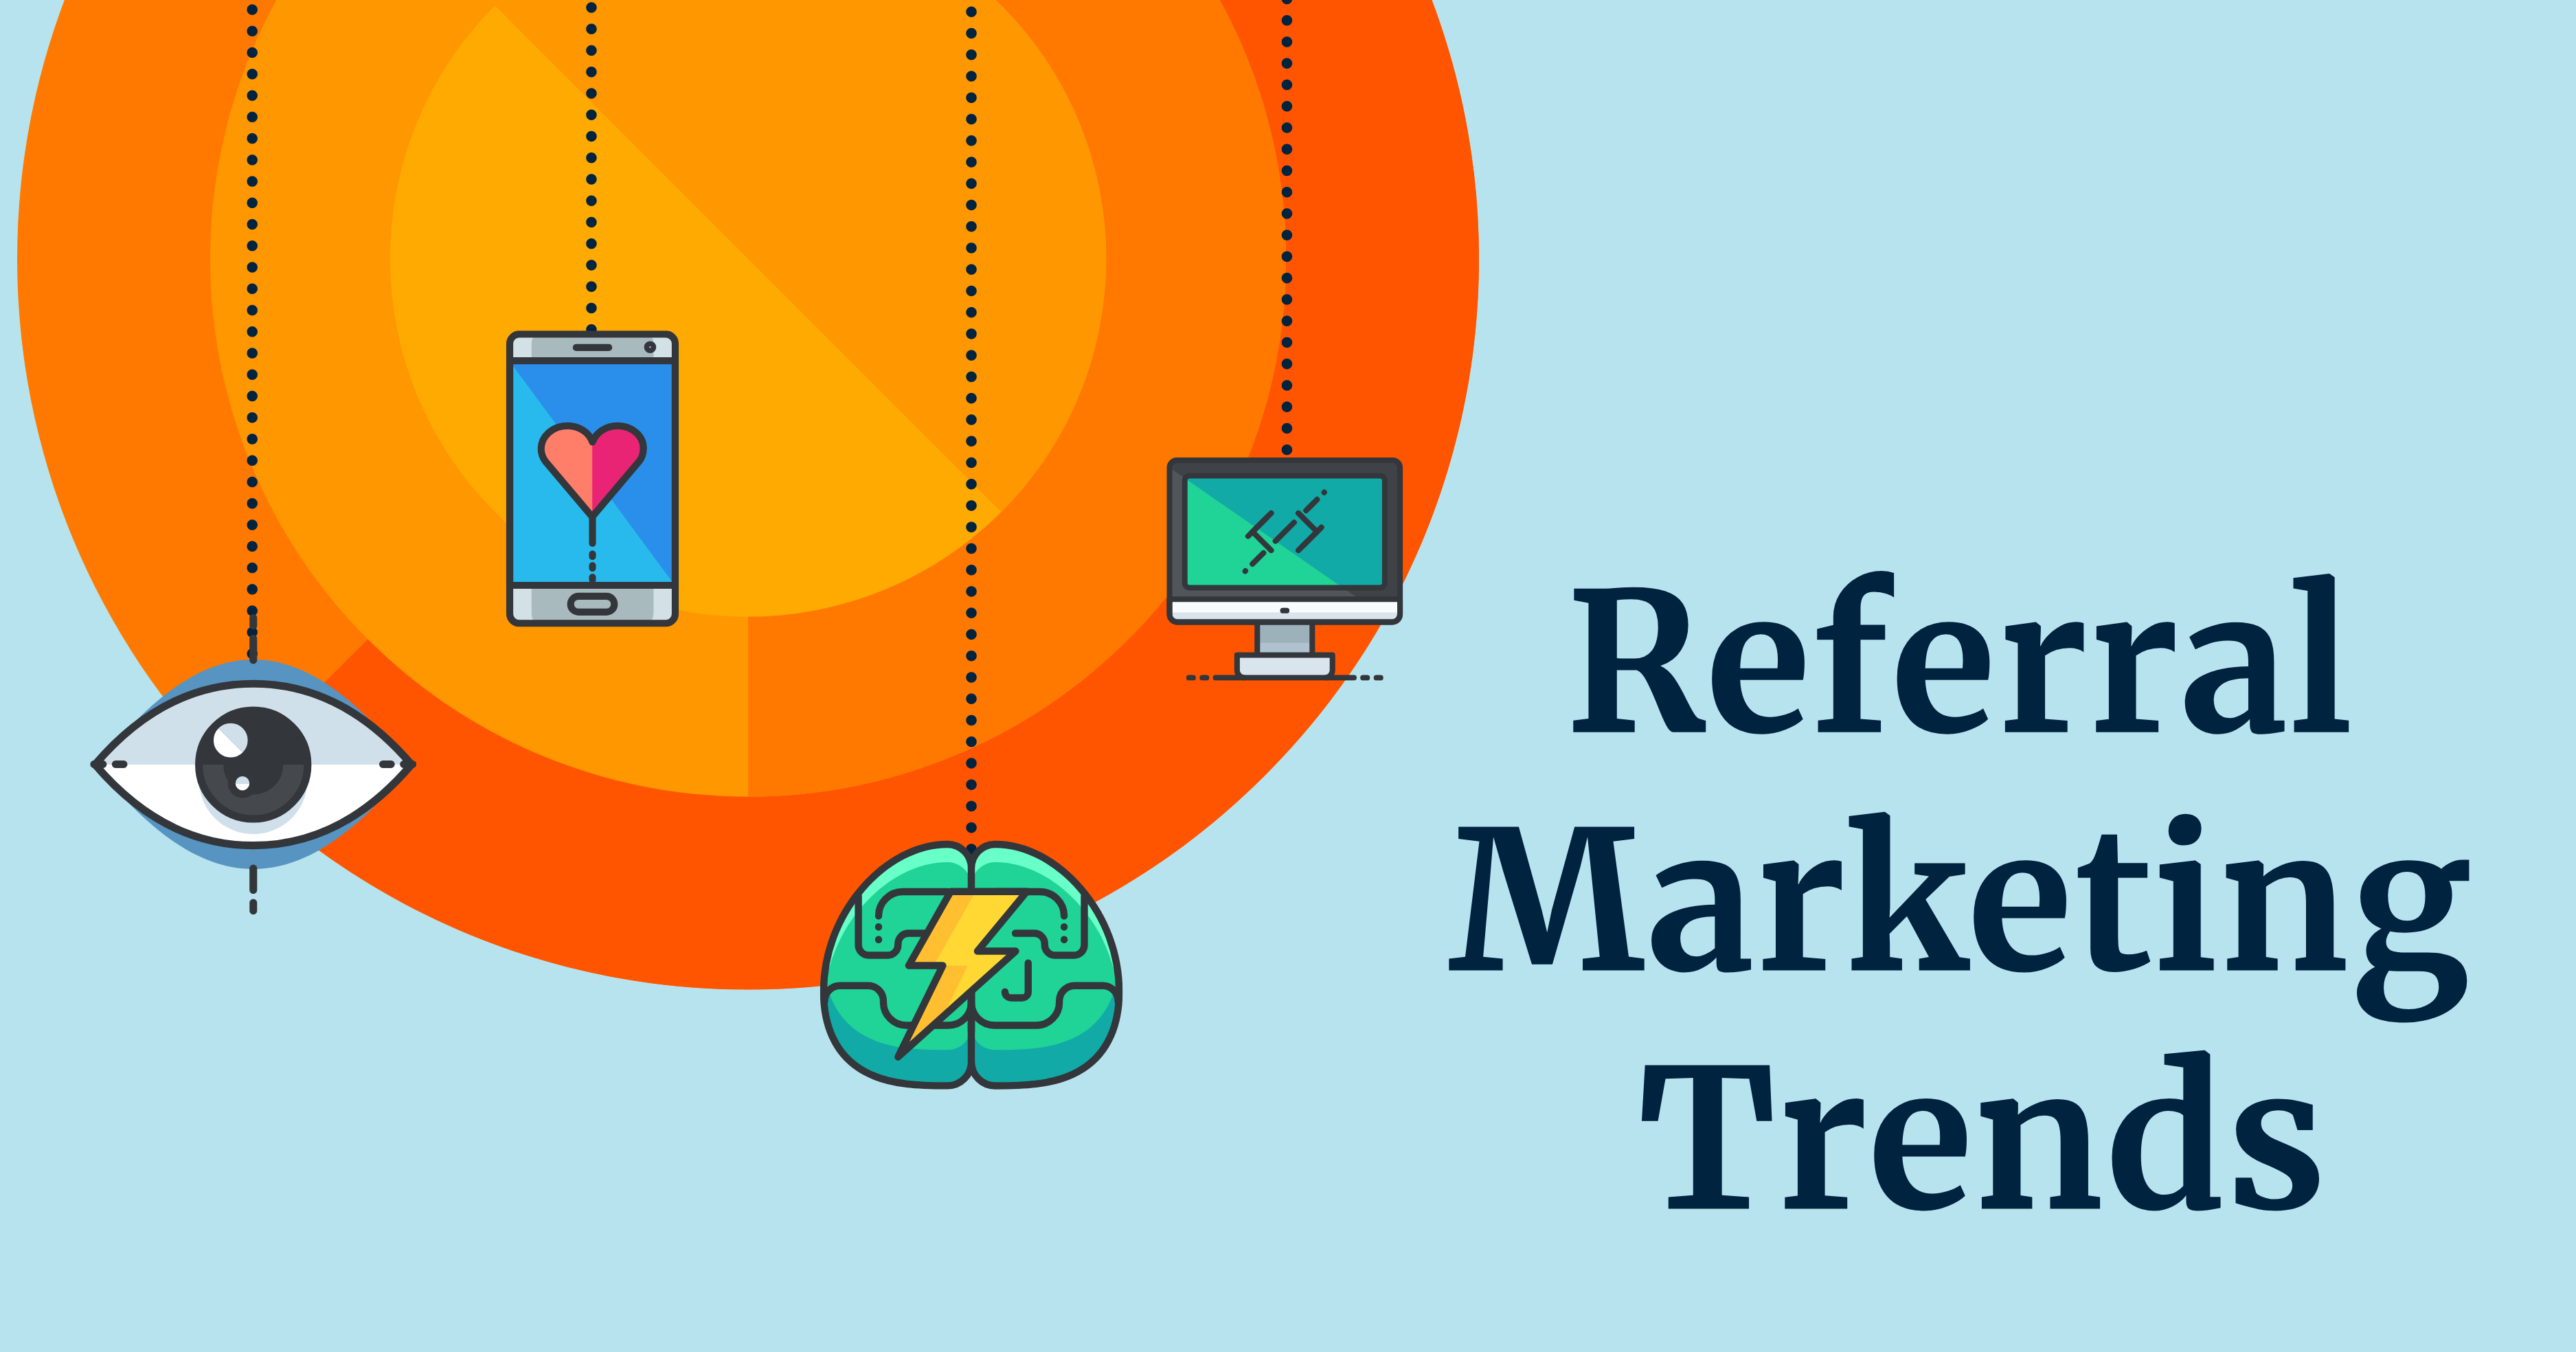 Long_Marketing Referral Software Trends